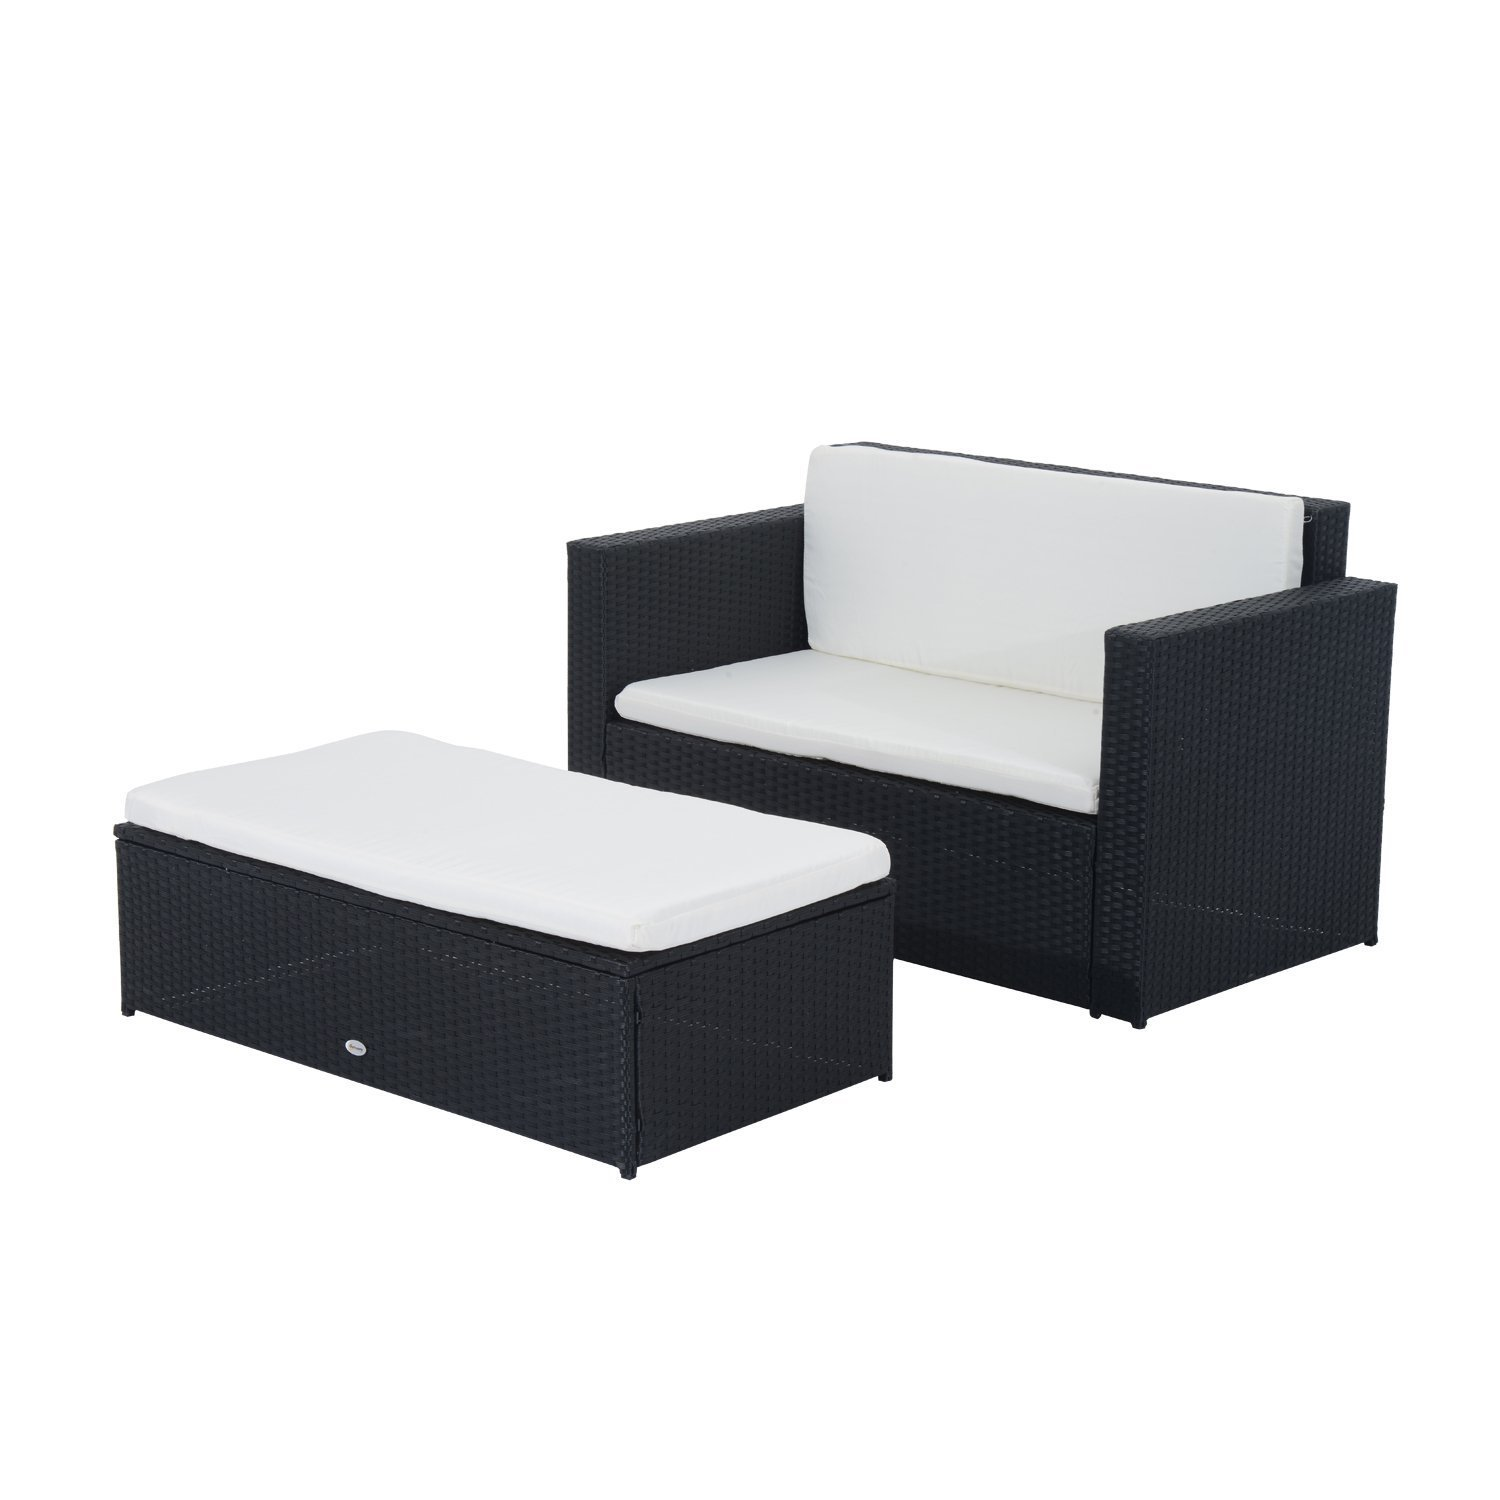 outsunny gartenm bel polyrattan gartenset sitzgruppe. Black Bedroom Furniture Sets. Home Design Ideas